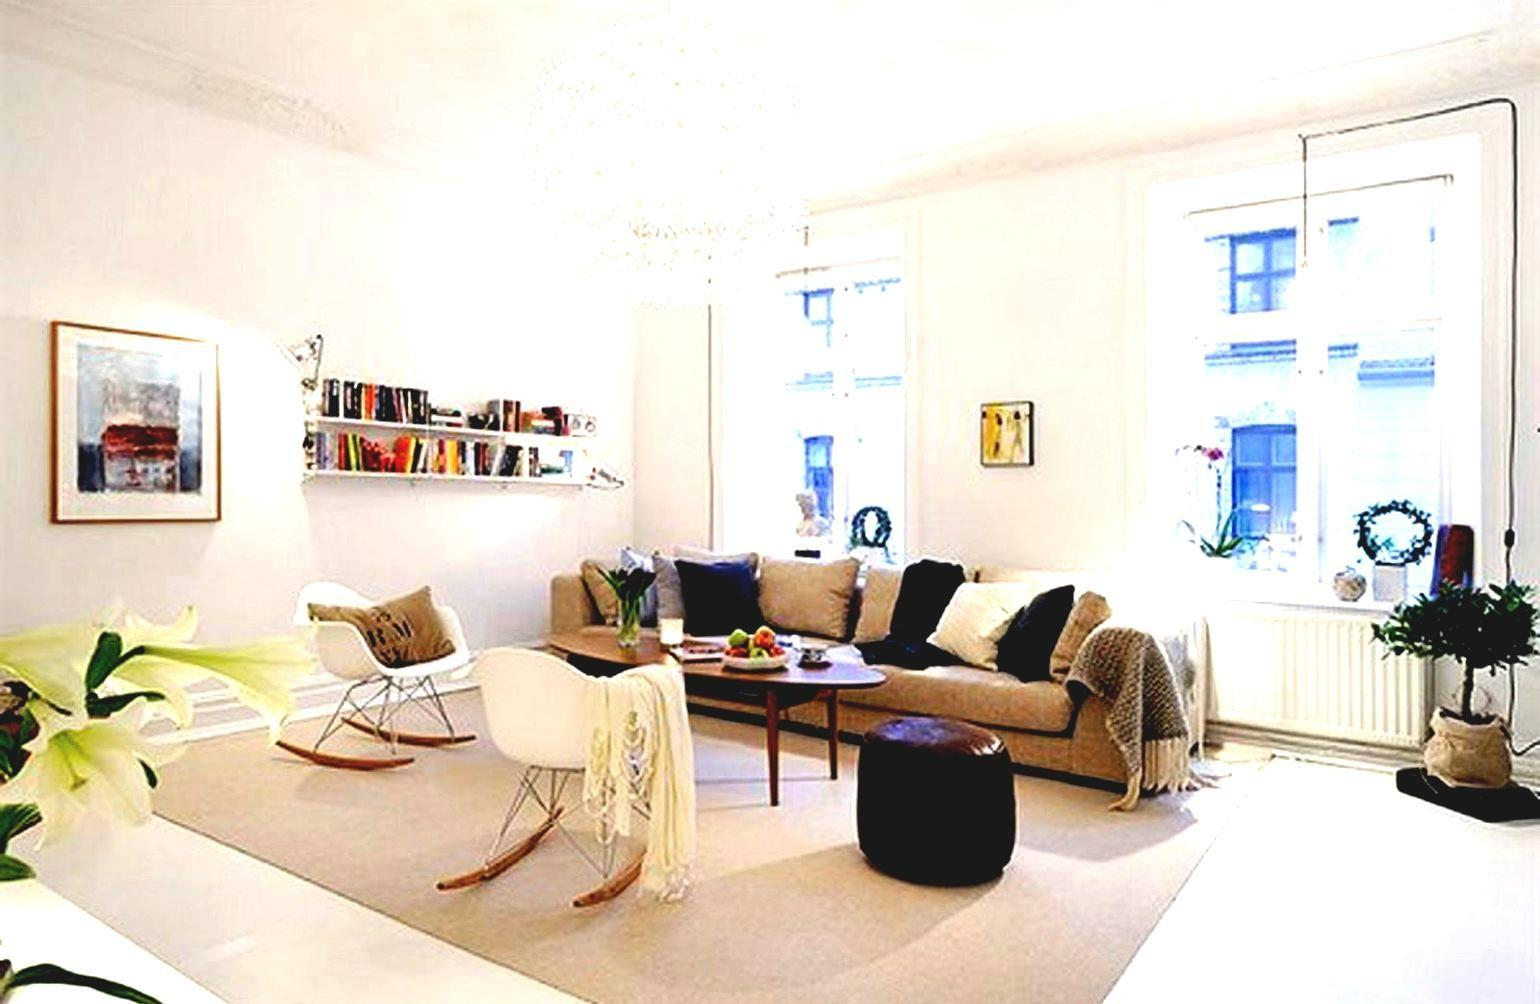 43 Remarkably Small Student Apartment Design That Look Like A Little Paradise Awesome Pictures Decoratorist